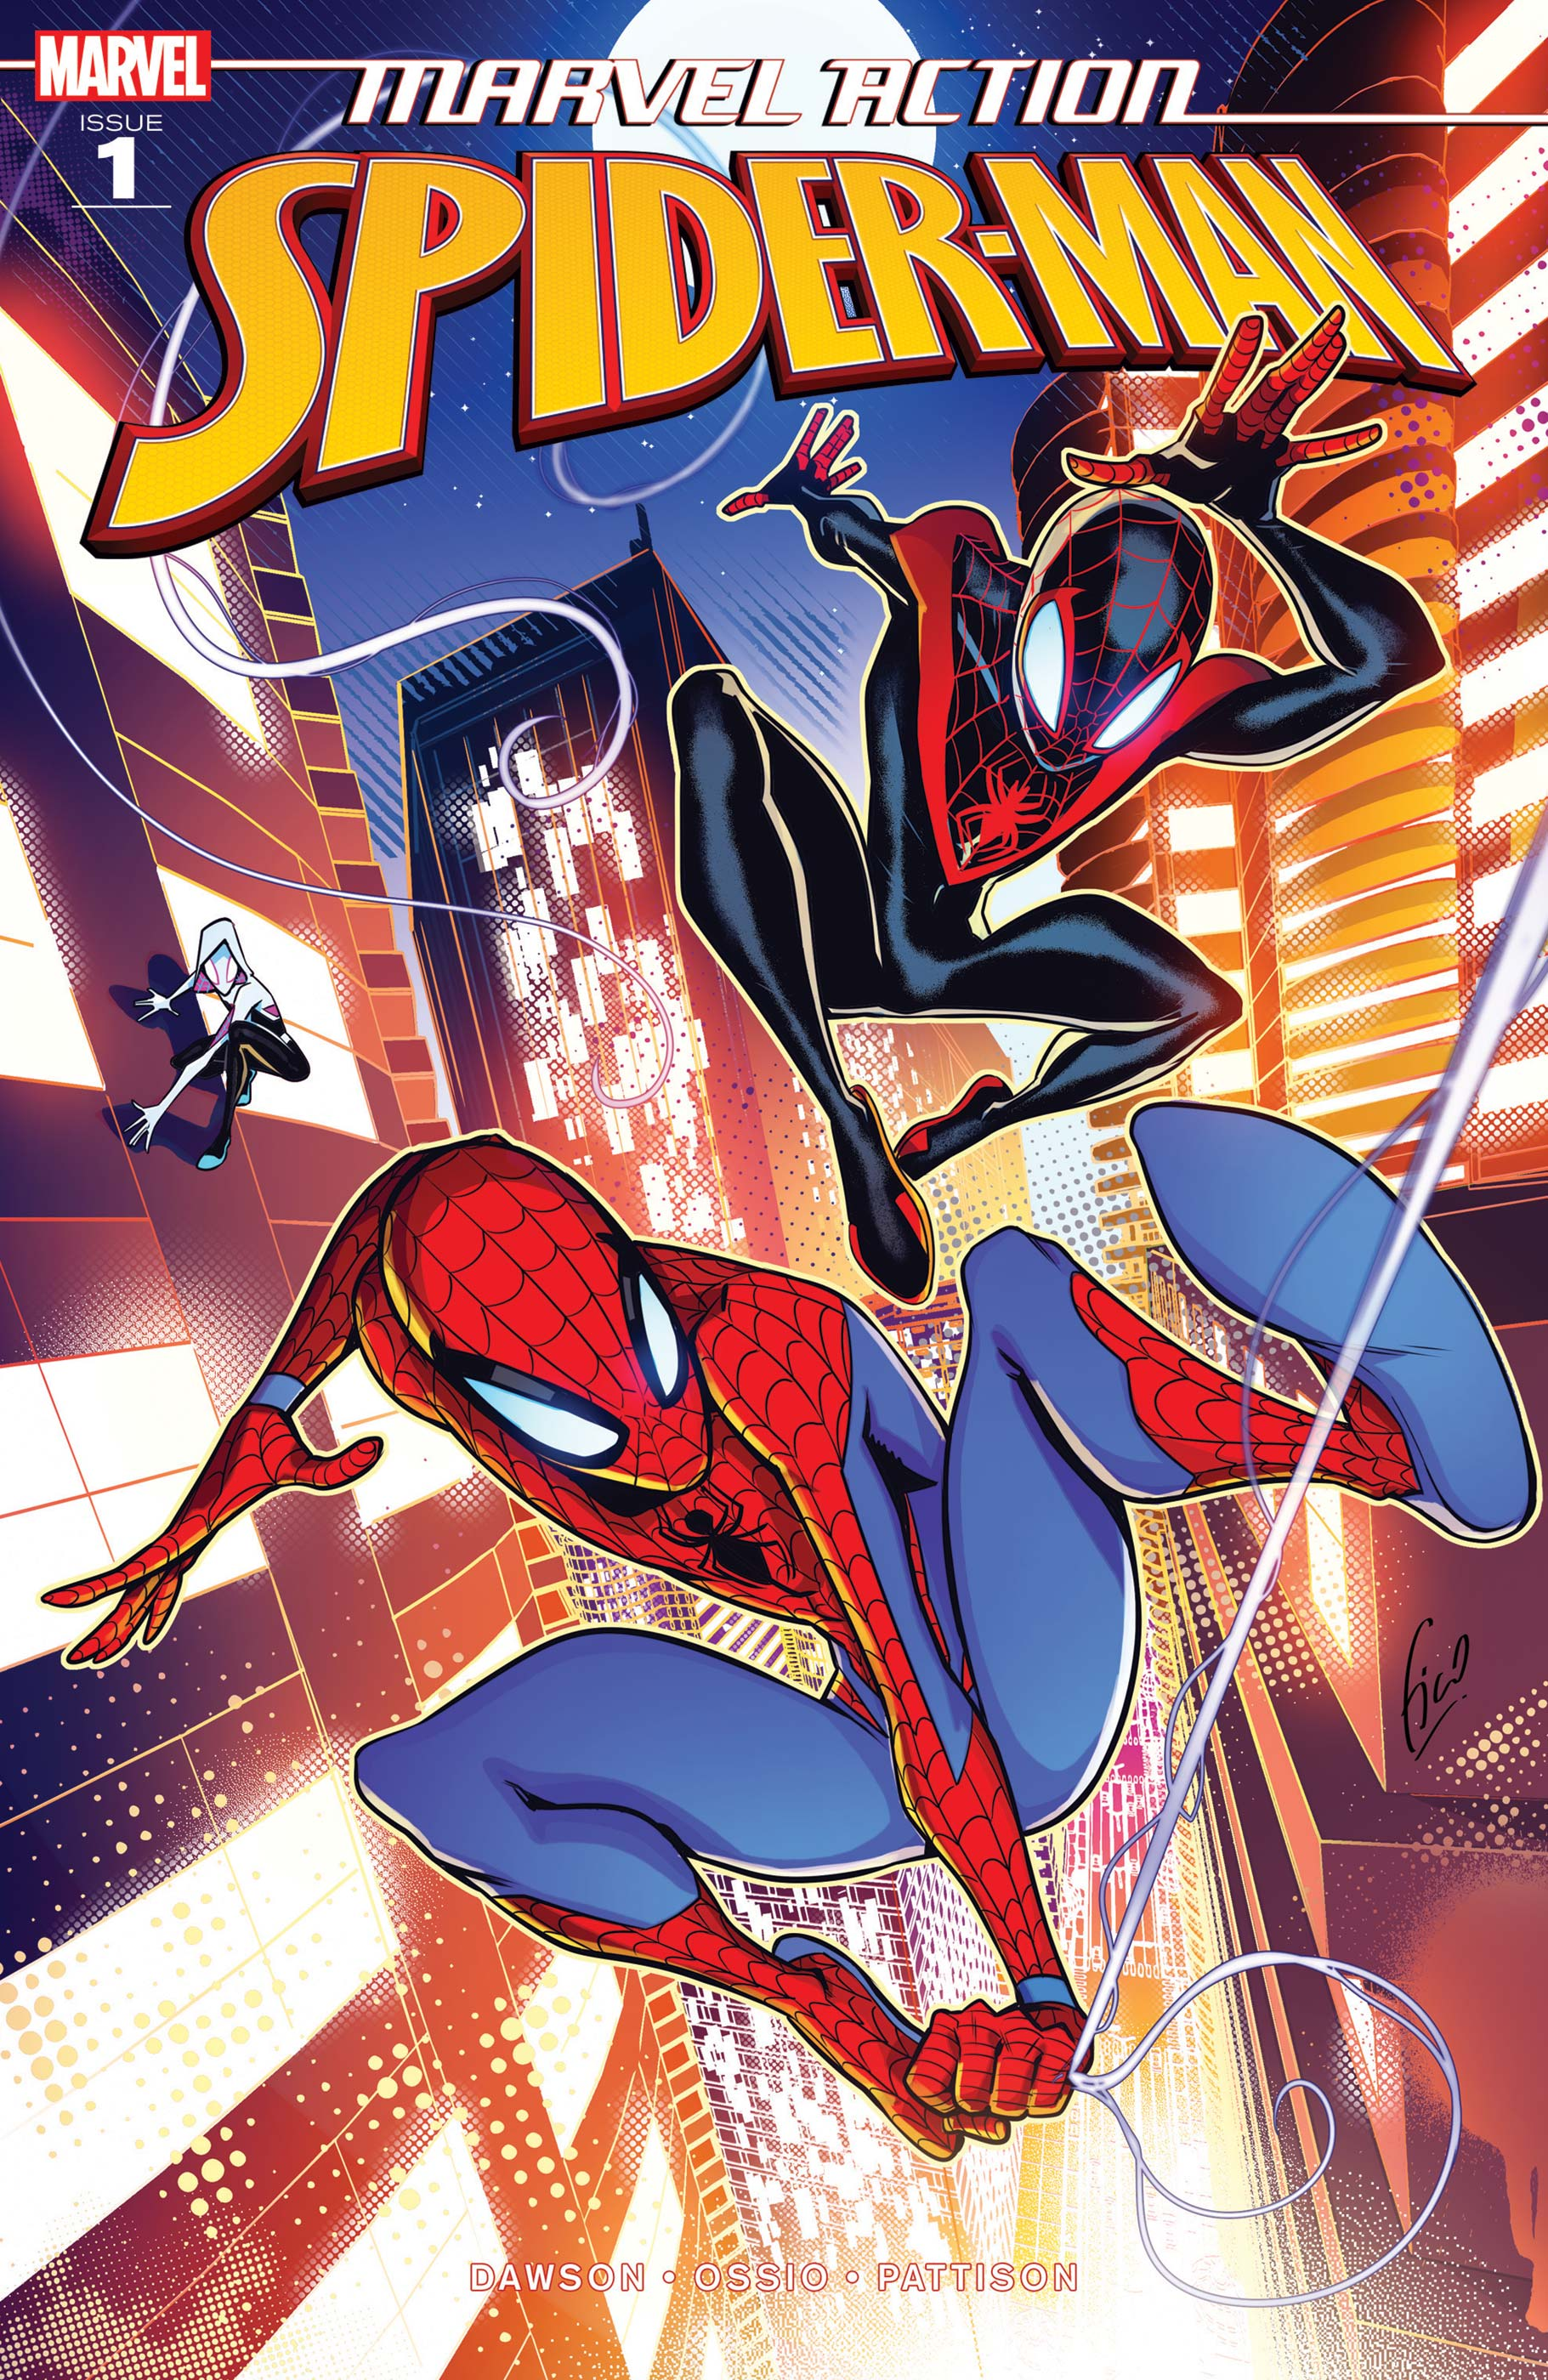 Marvel Action Spider-Man (2018) #1